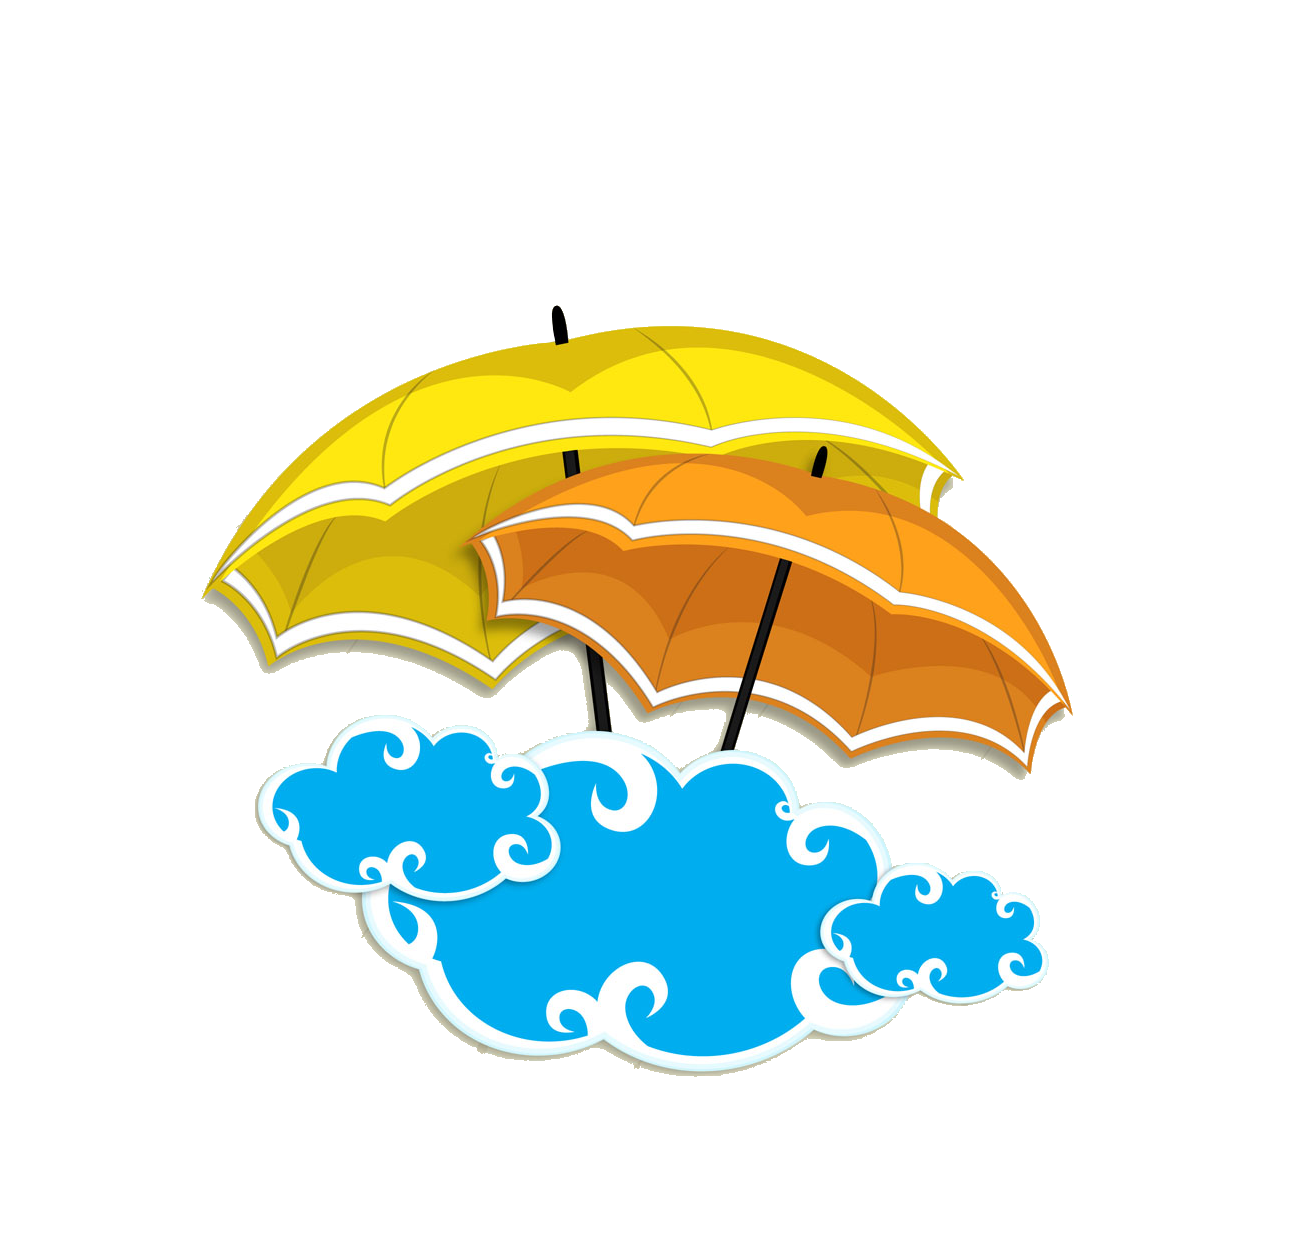 Orange clipart clouds. Rain monsoon clip art